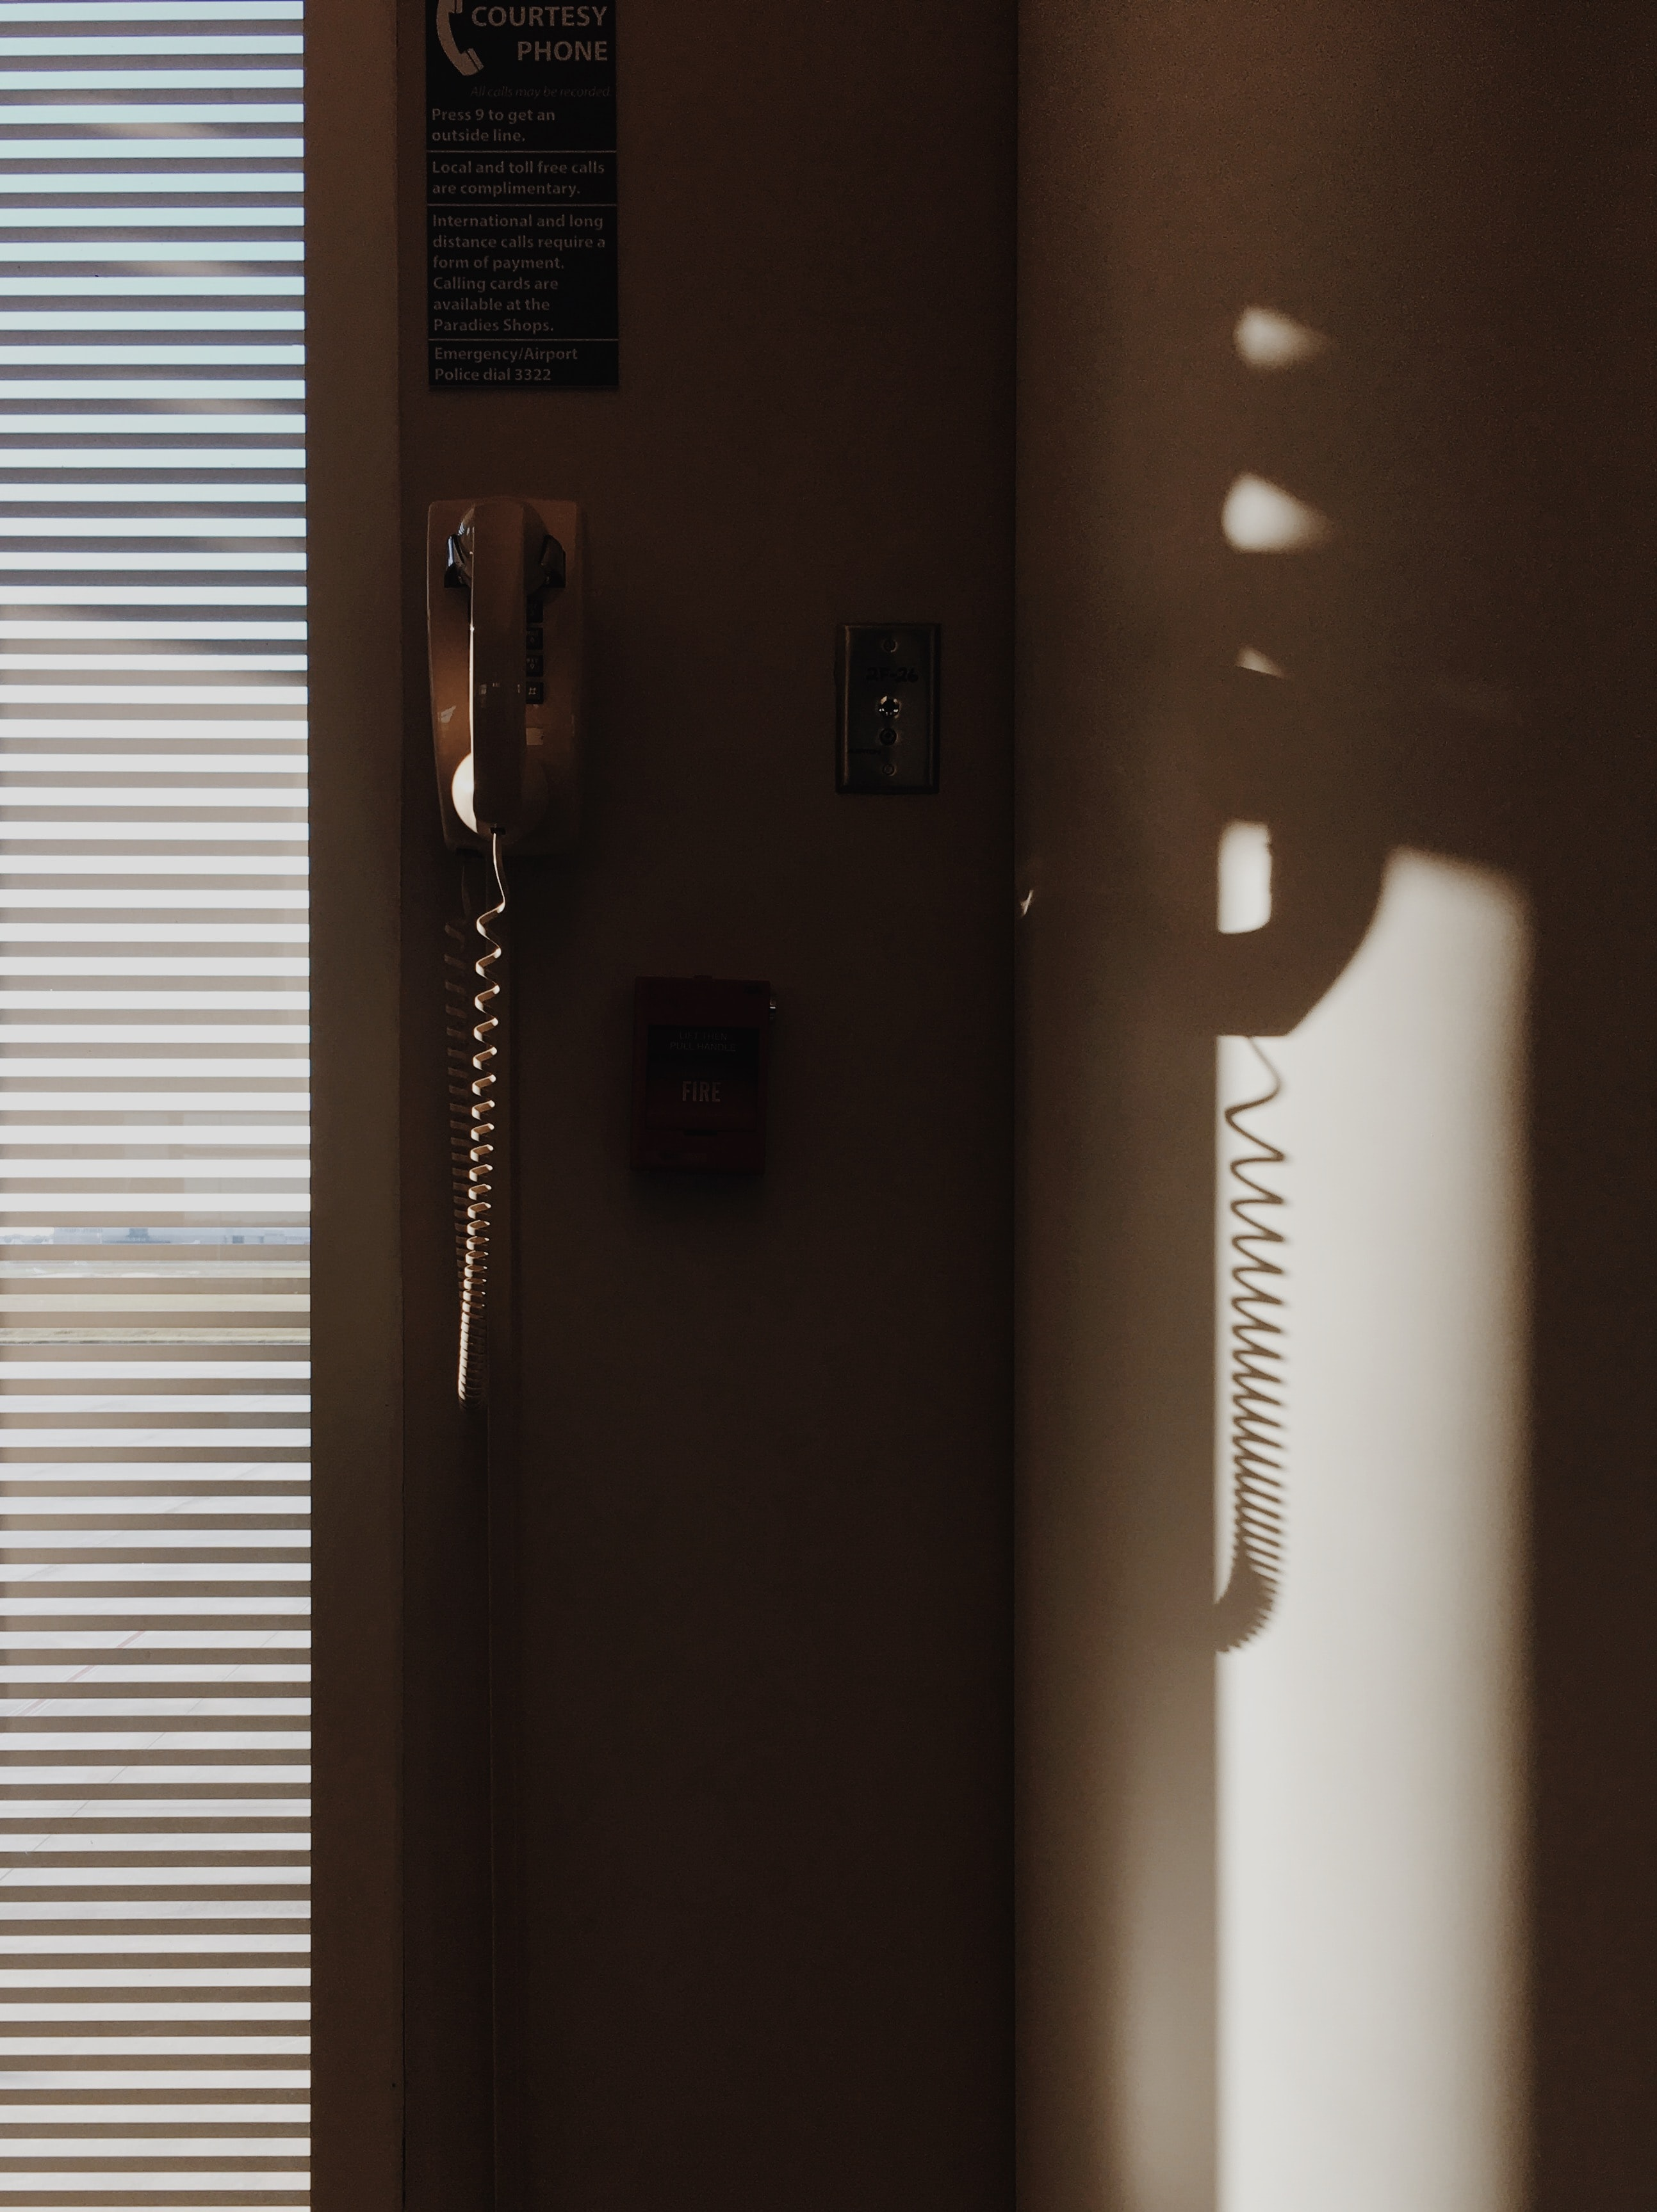 white corded telephone mounted on wall near window with window blinds